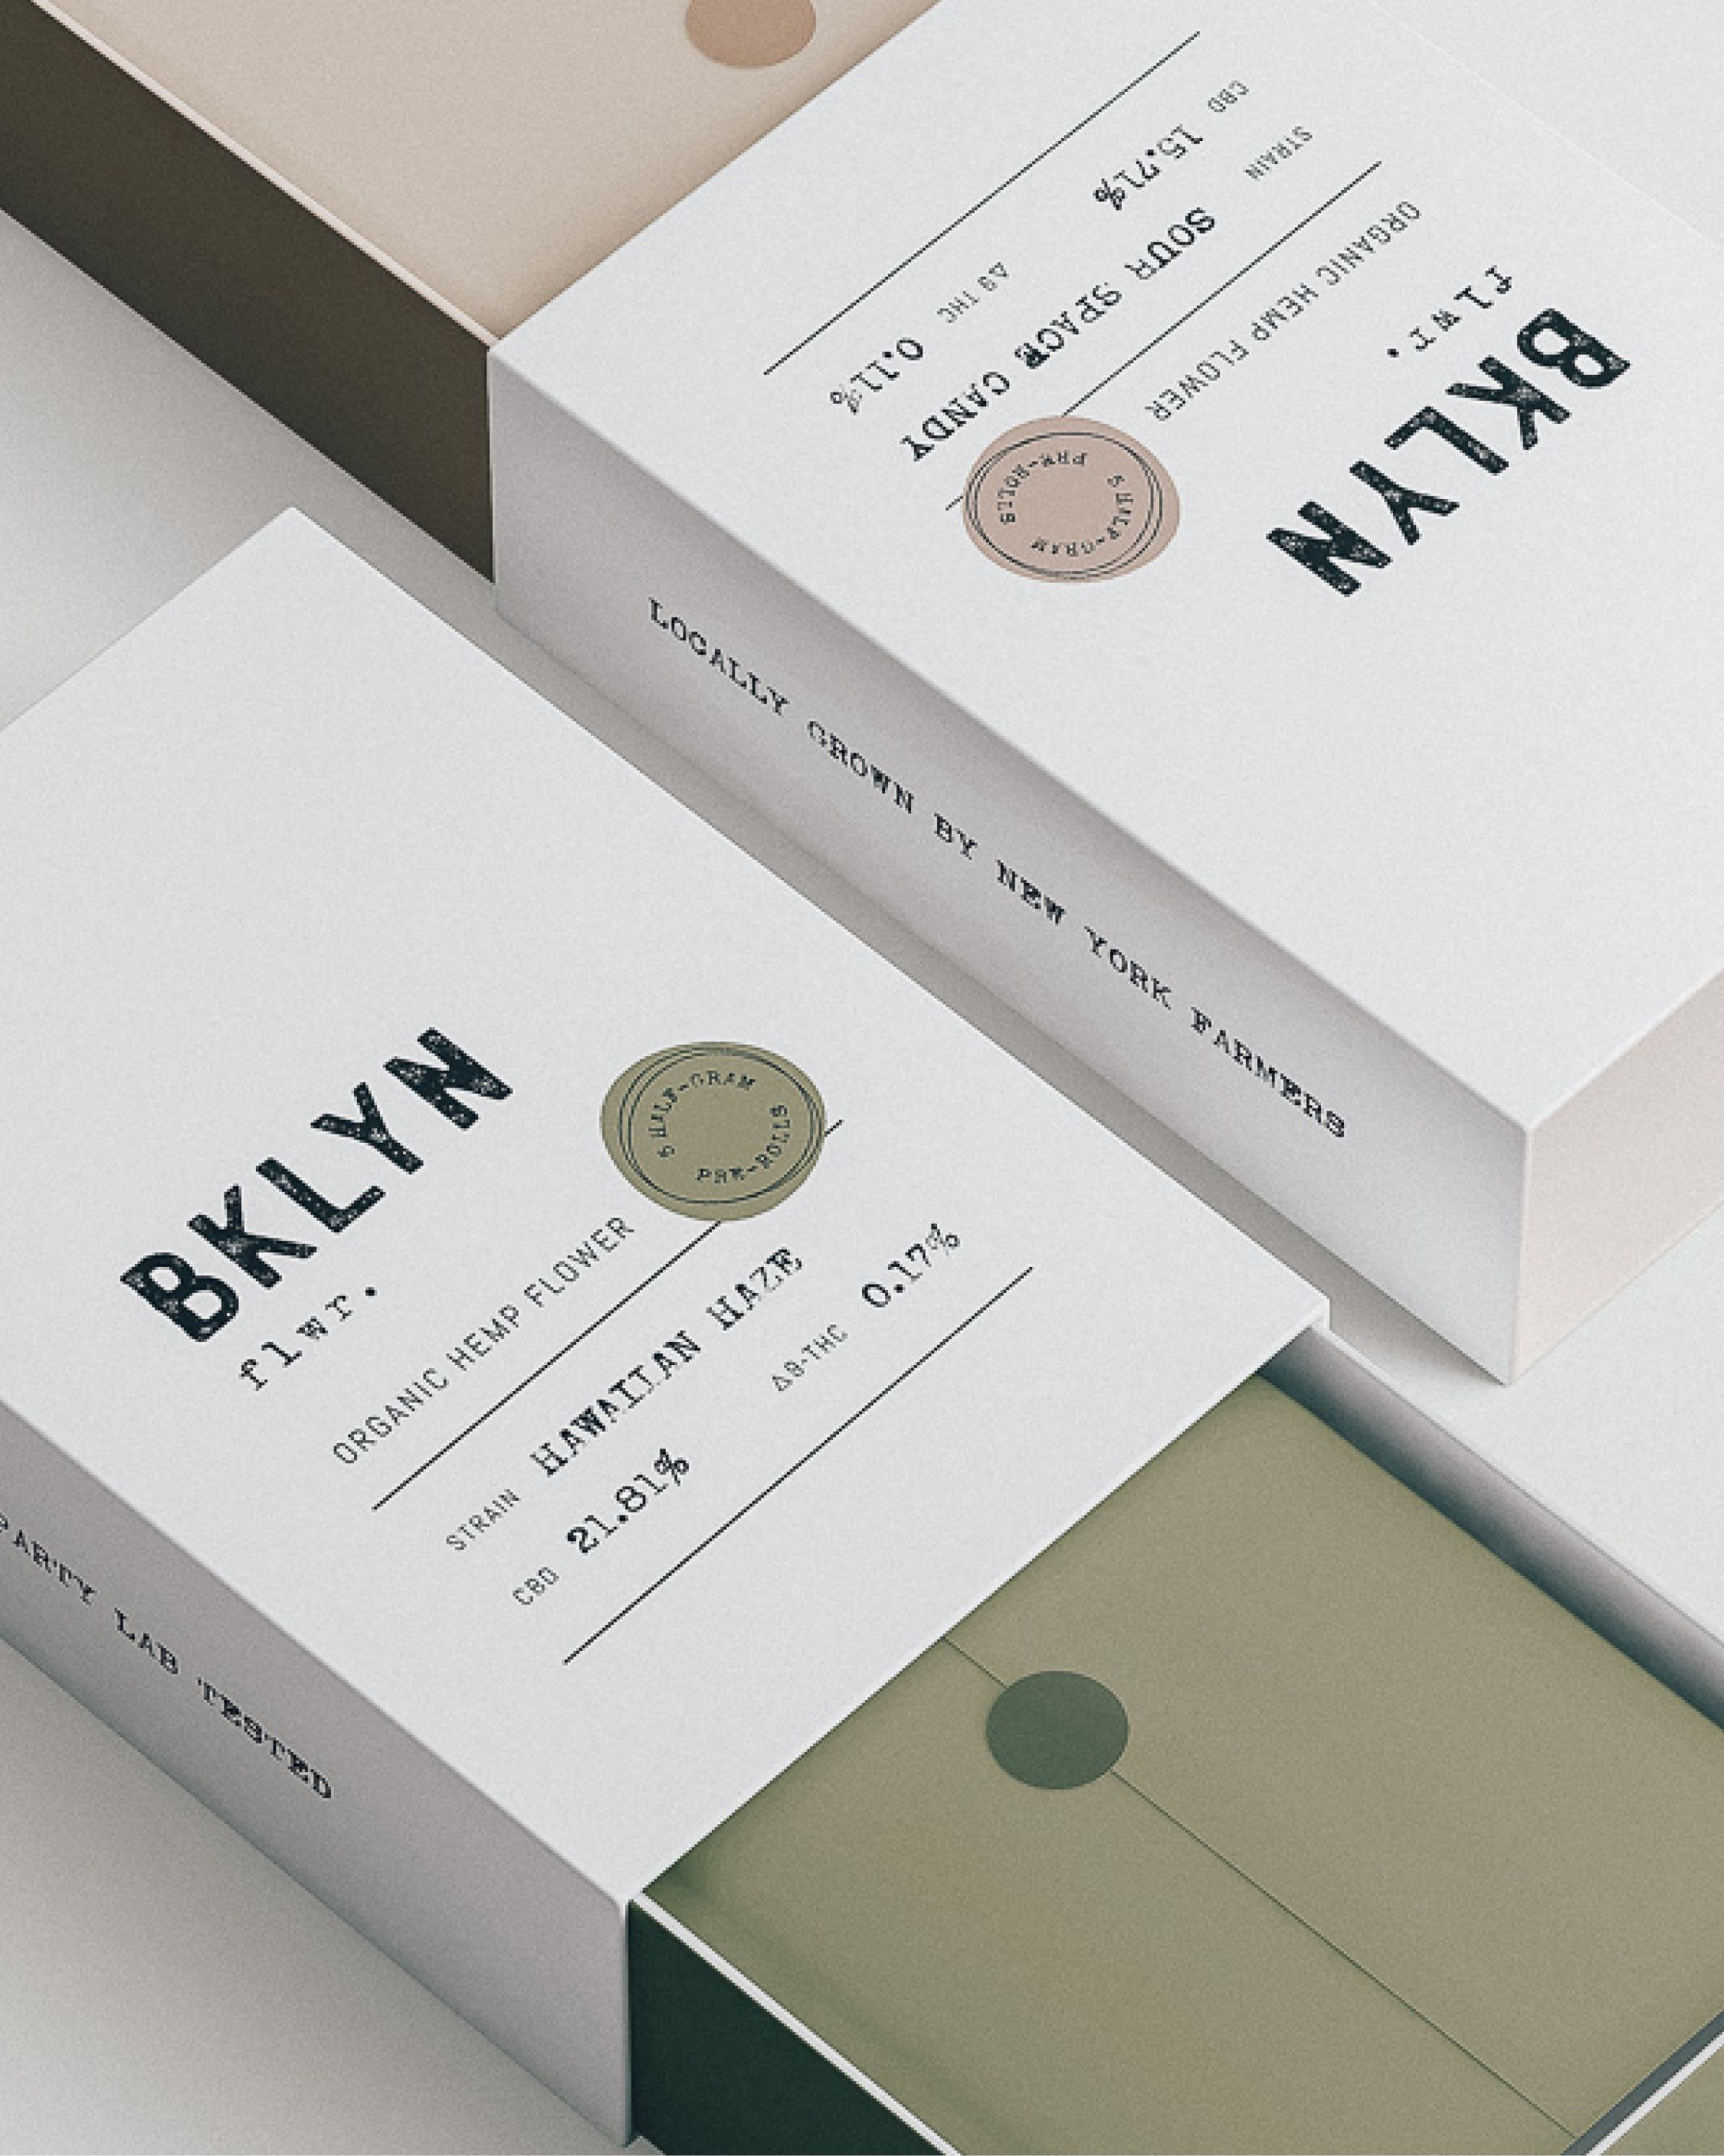 We designed a brand identity for BKLYN FLWR that blossomed into a handful of packaging, print, and social media projects. The look and feel of the brand's design emphasizes their commitment to quality and the magic of doing things by hand. #designinspiration #design #packagingdesign